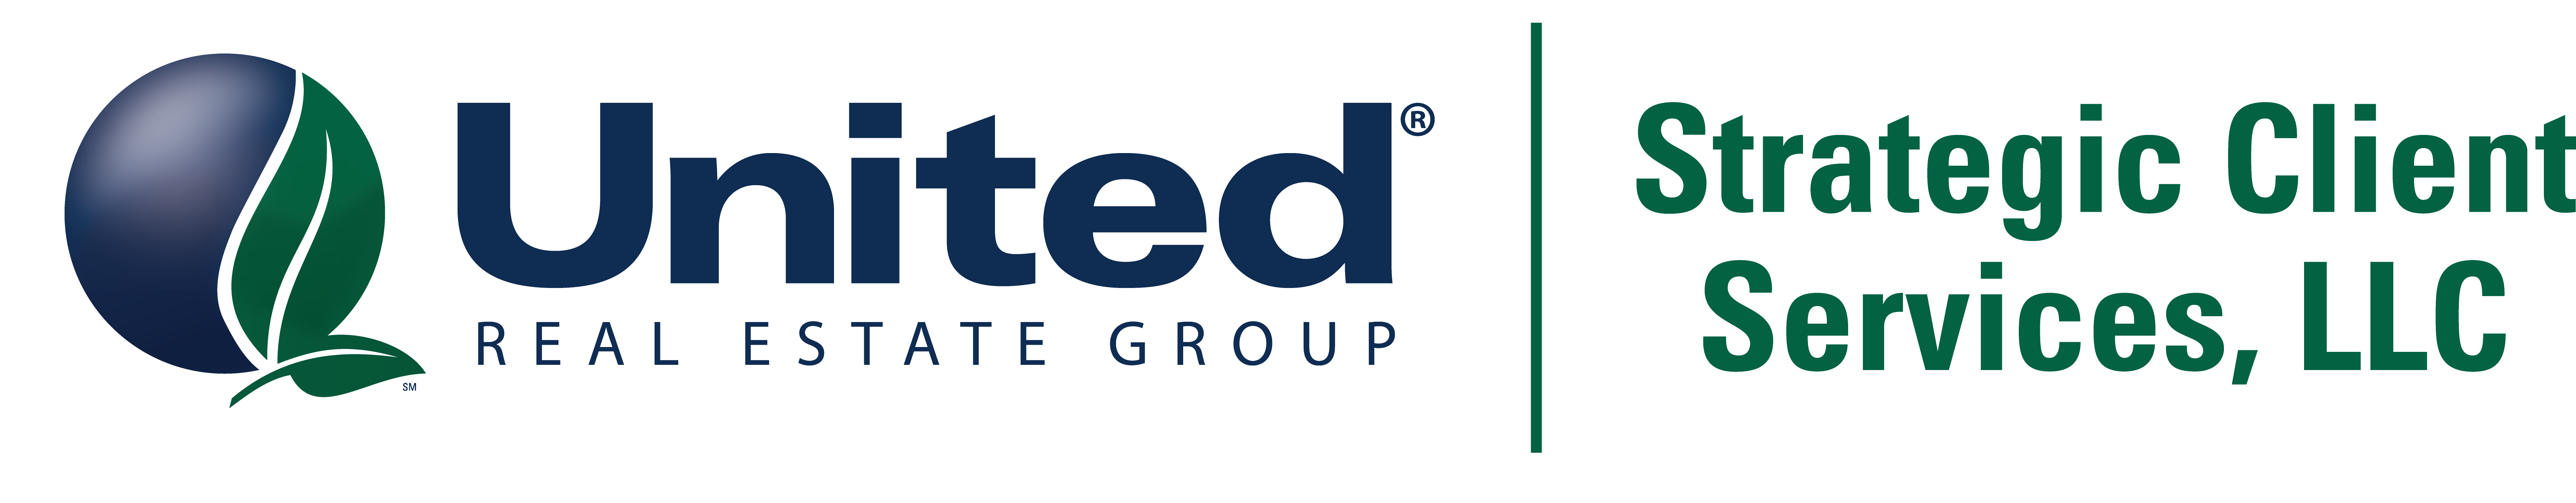 United Group Strategic client services (SCS)